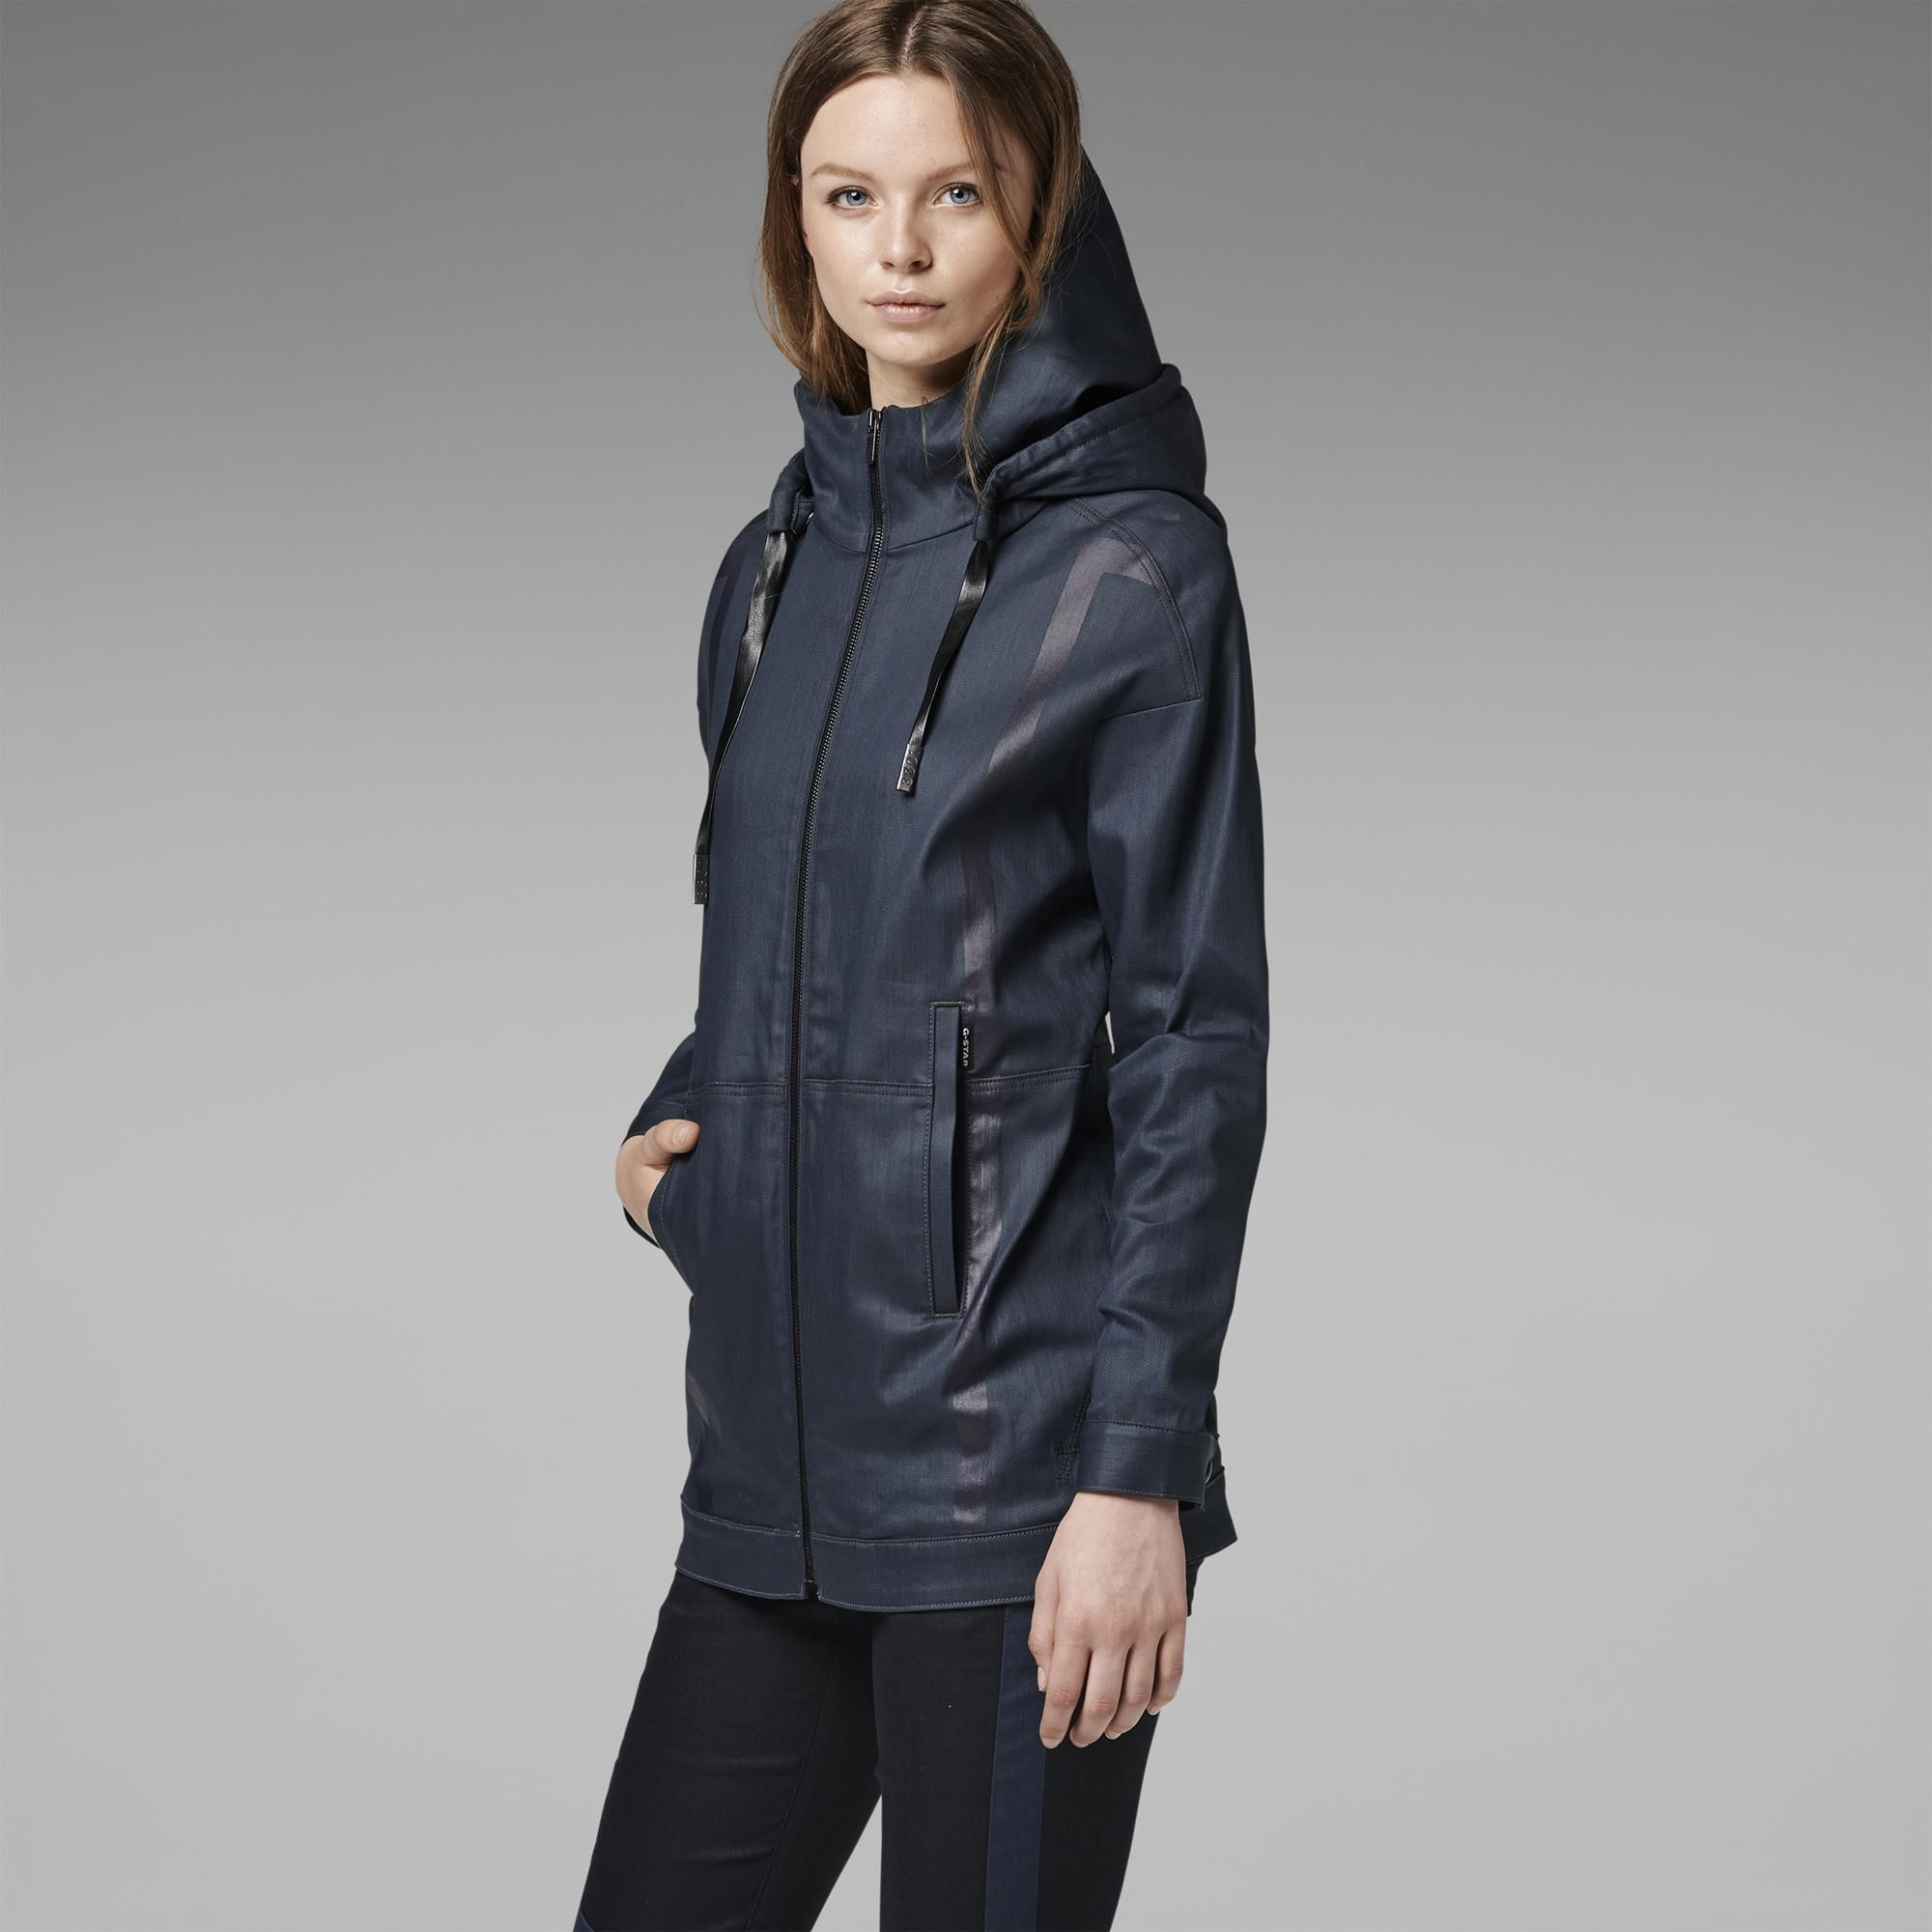 G-Star RAW | Women | Shirts | A-crotch Sp Hood Bomber ,